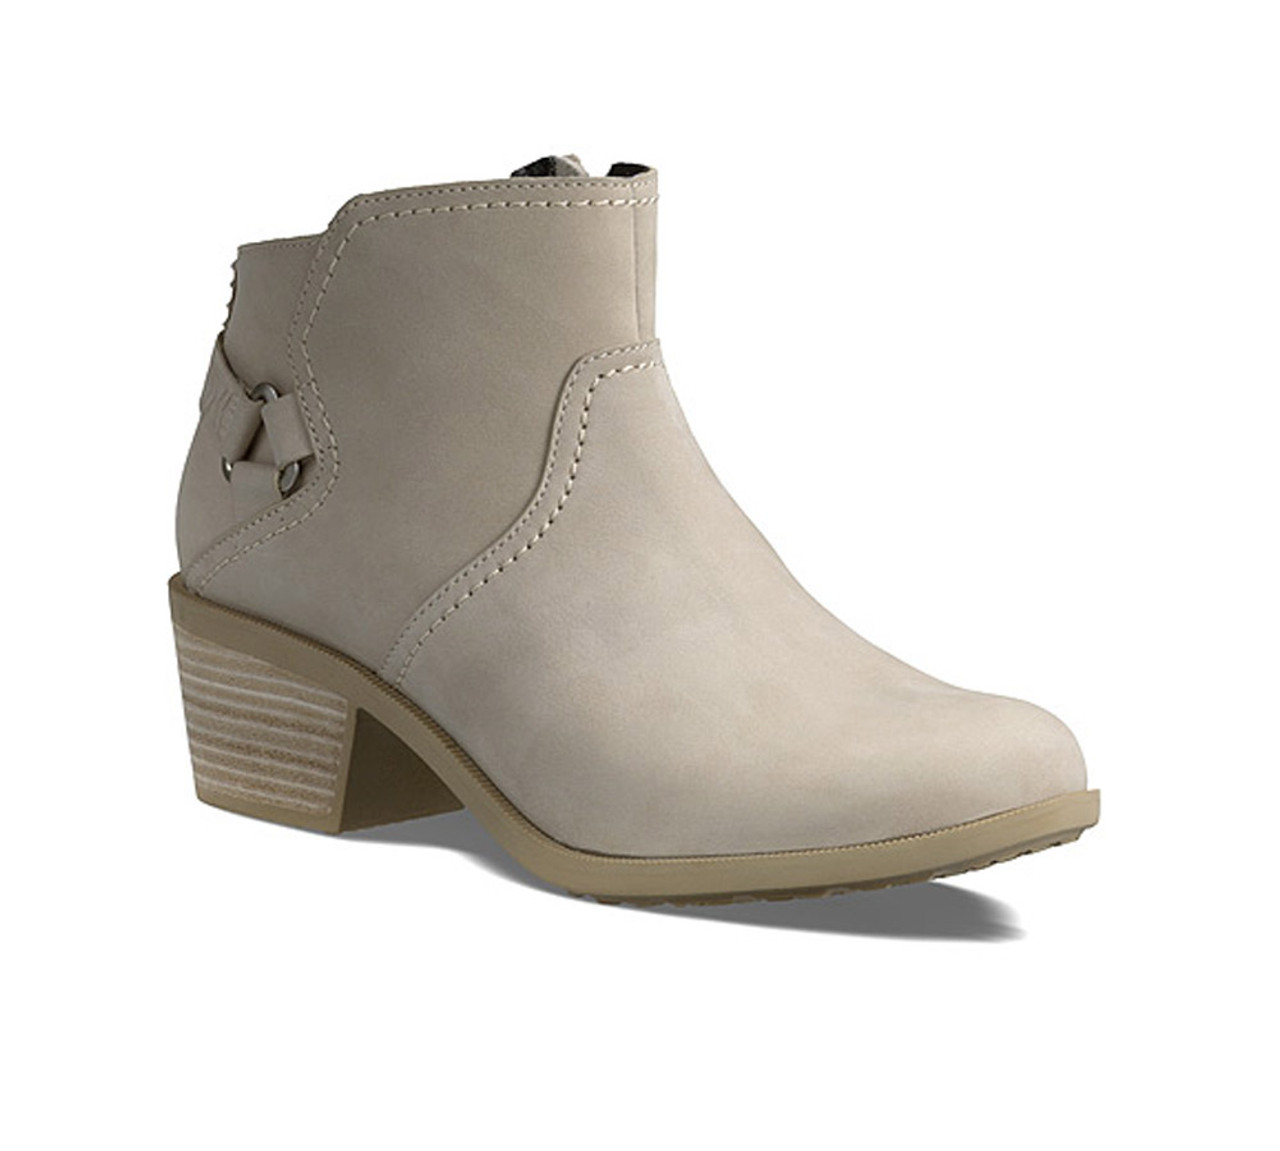 b74f7461f Teva Women s Foxy Ankle Boot Taupe - Shop now   Shoolu.com